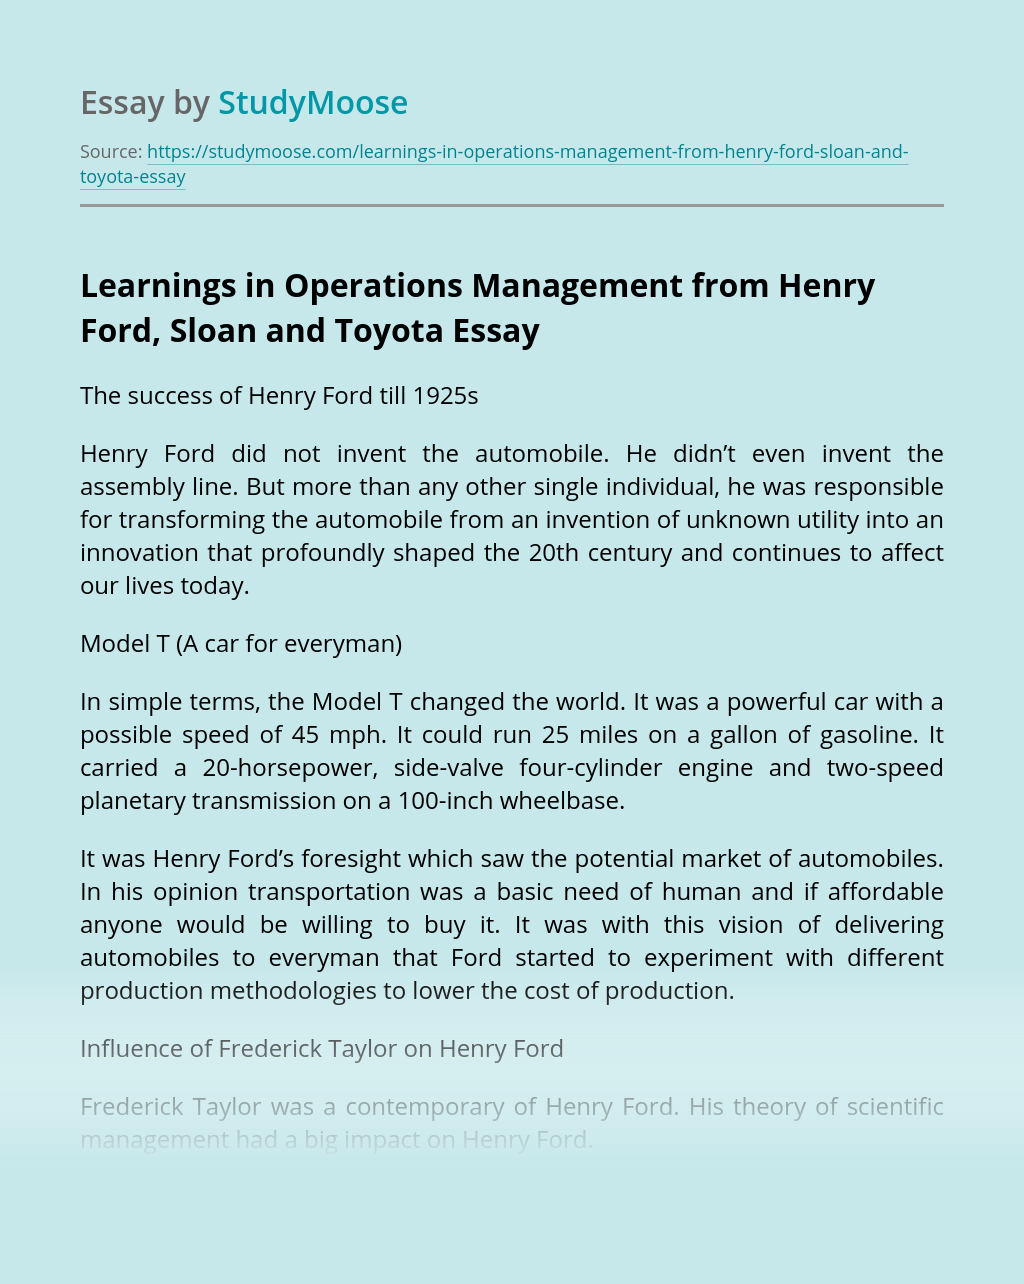 Learnings in Operations Management from Henry Ford, Sloan and Toyota